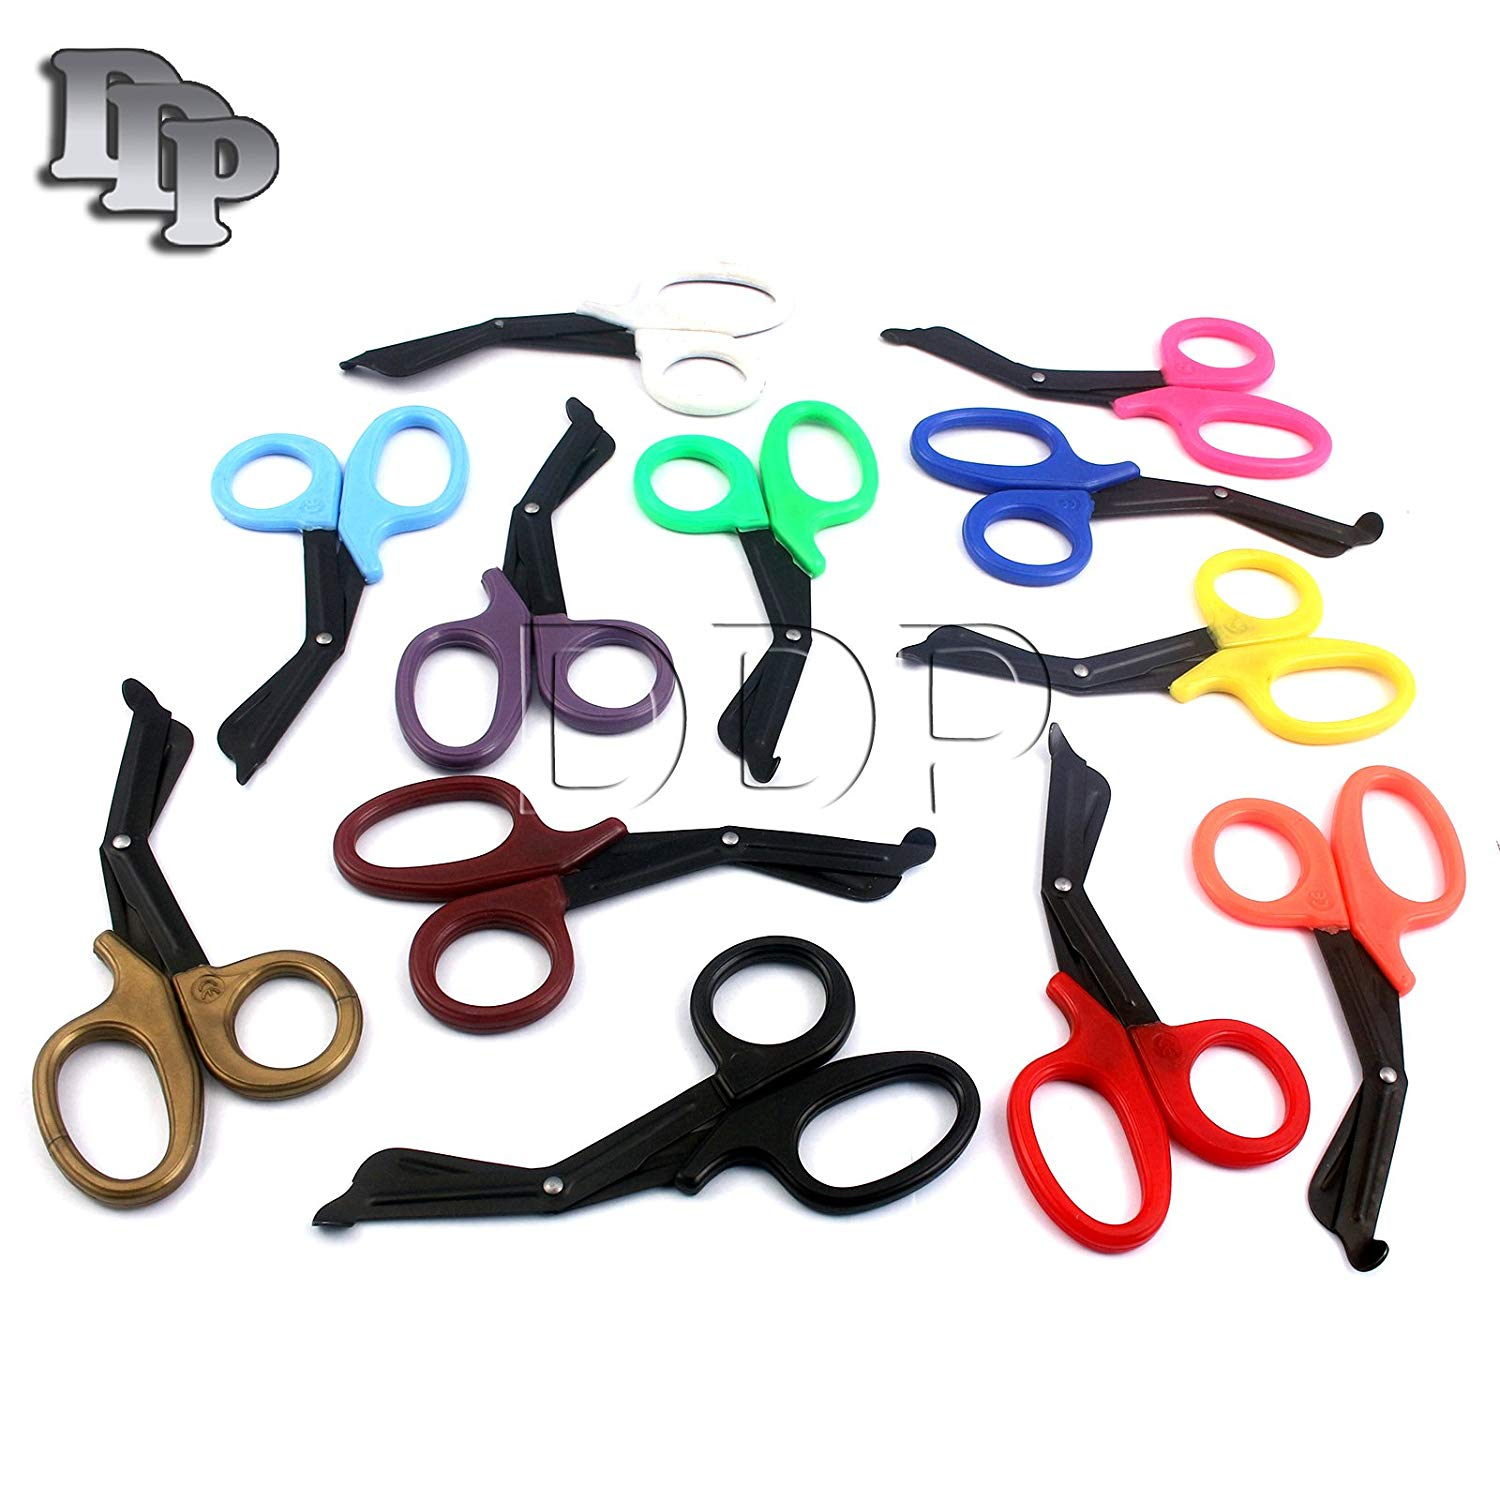 "SET OF 12 ( MIX COLORS ) FLUORIDE COATED TRAUMA PARAMEDIC EMT SHEARS SCISSORS 5.5"" (DDP BRAND)"